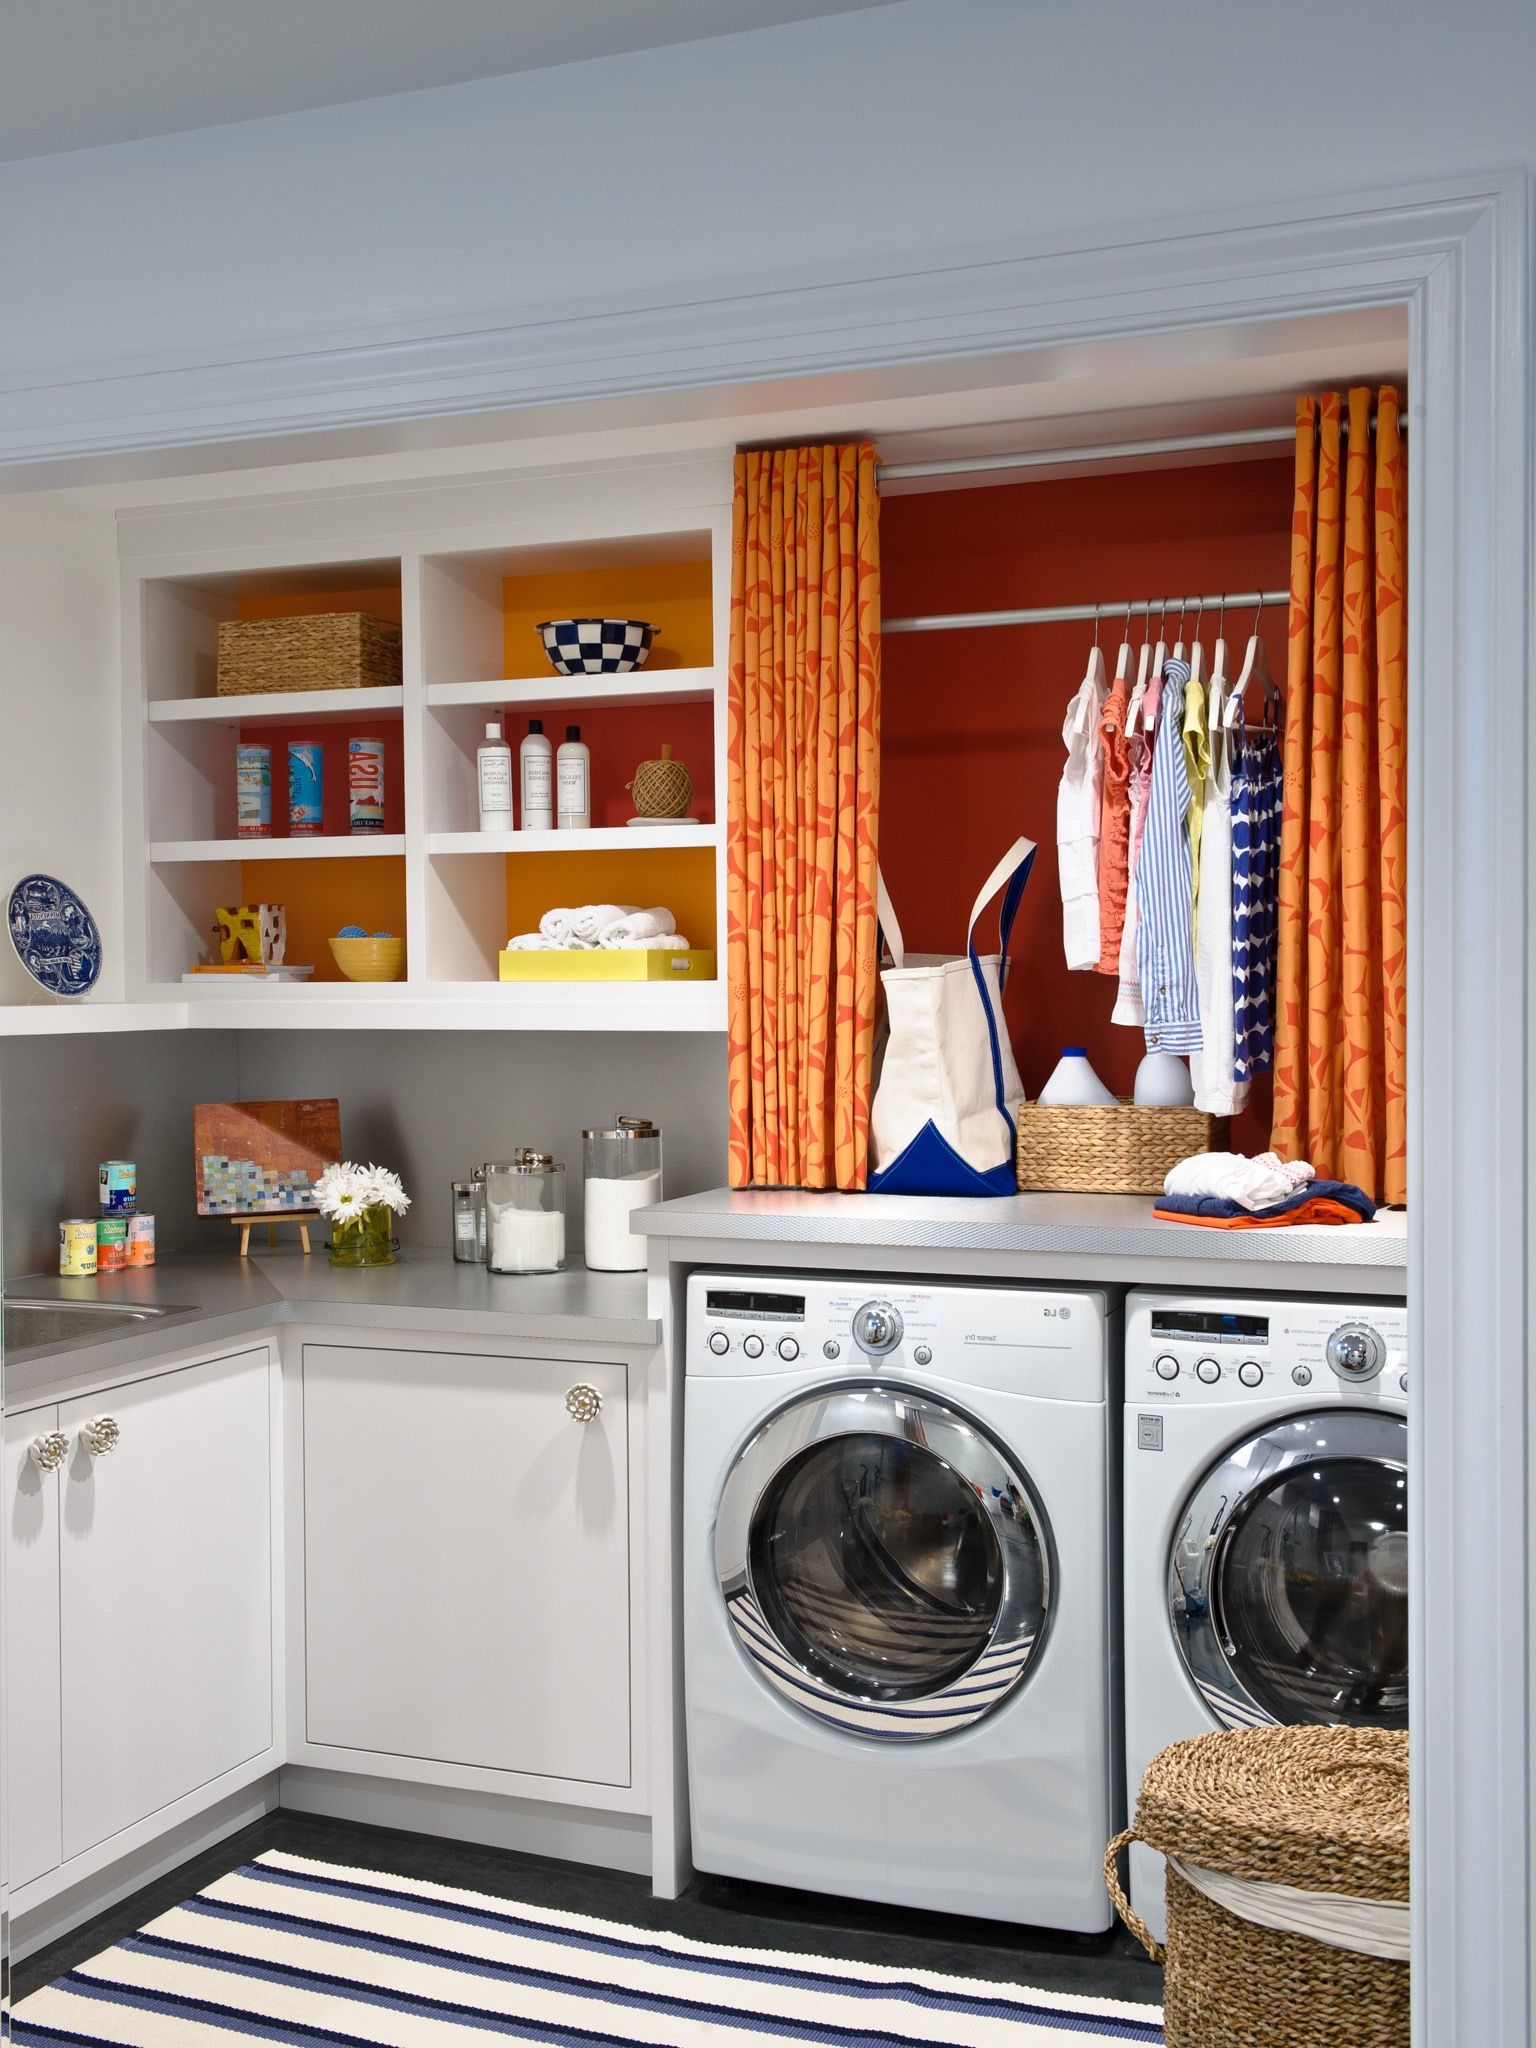 The basement laundry room doesn&39;t have to lack style. These plenty basement laundry room ideas ...